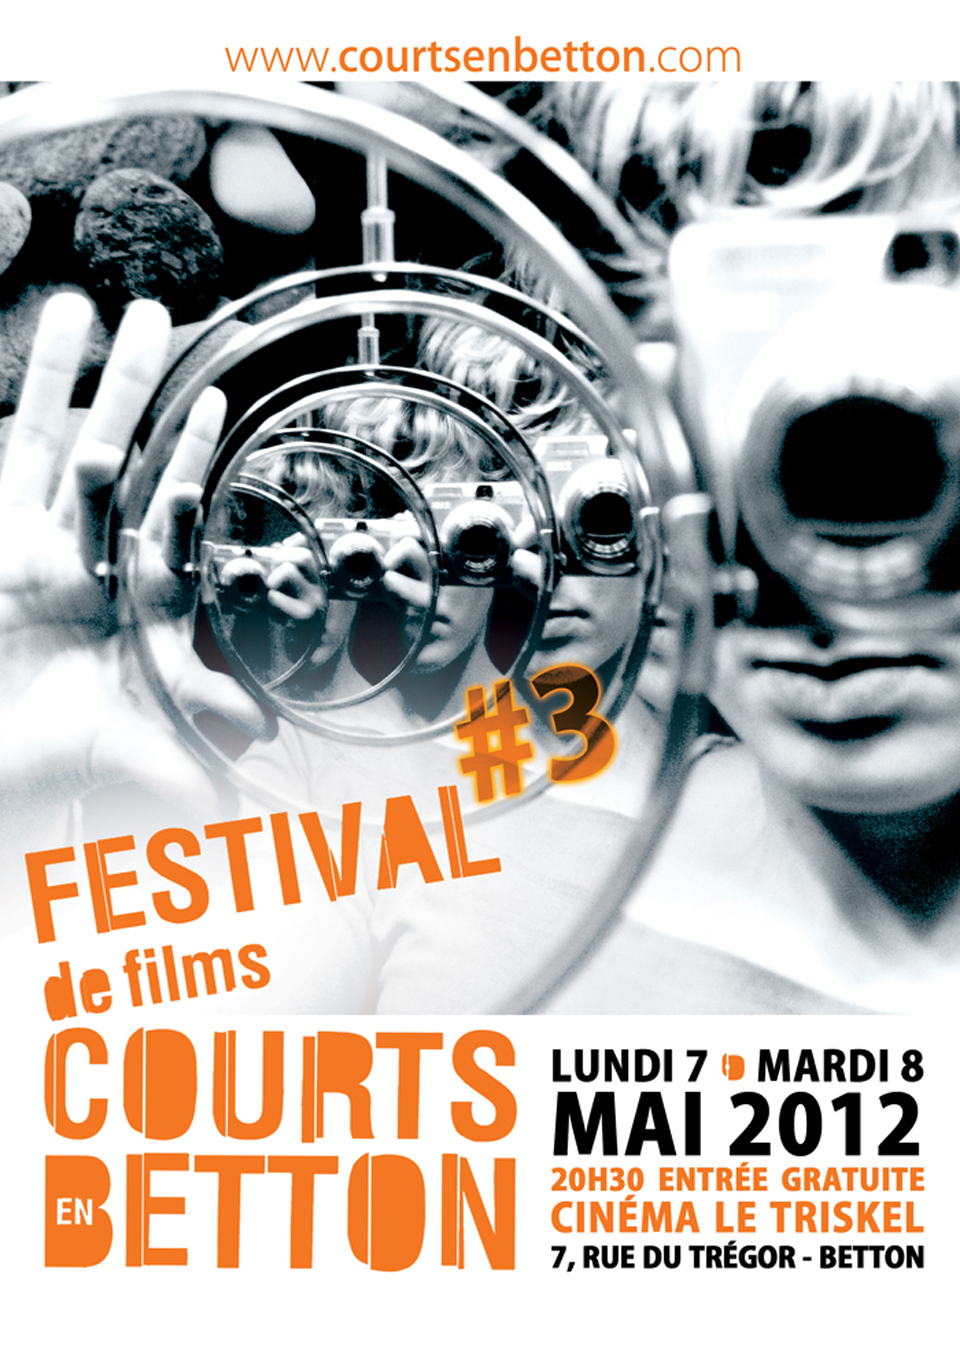 courtsenbetton_affiche2012